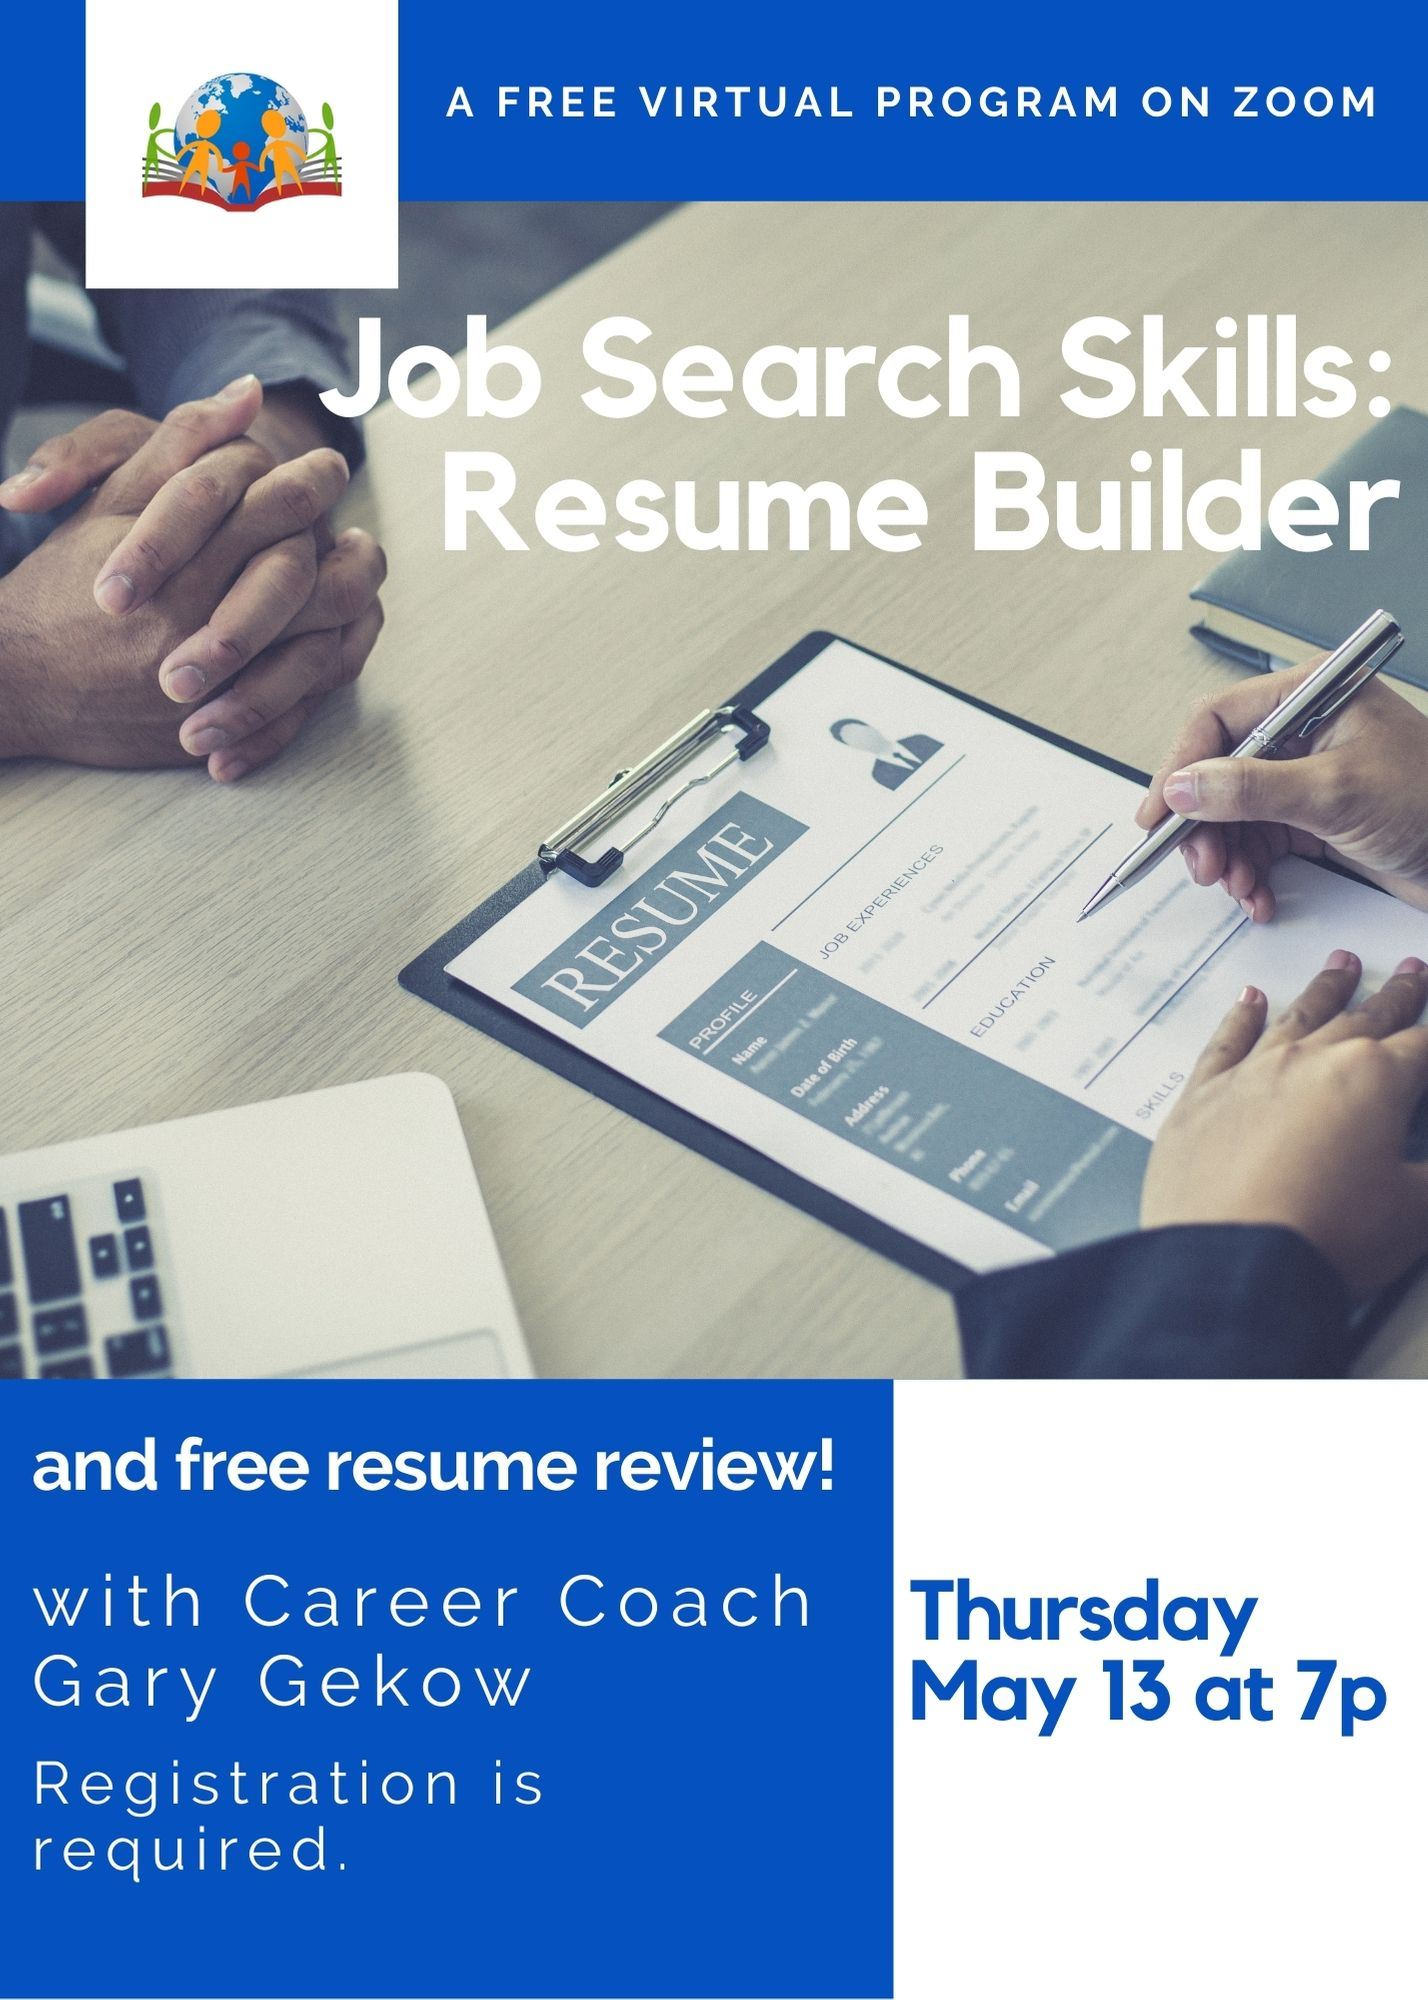 Job Search Skills: Resume Builder Workshop Thursday May 13 at 7